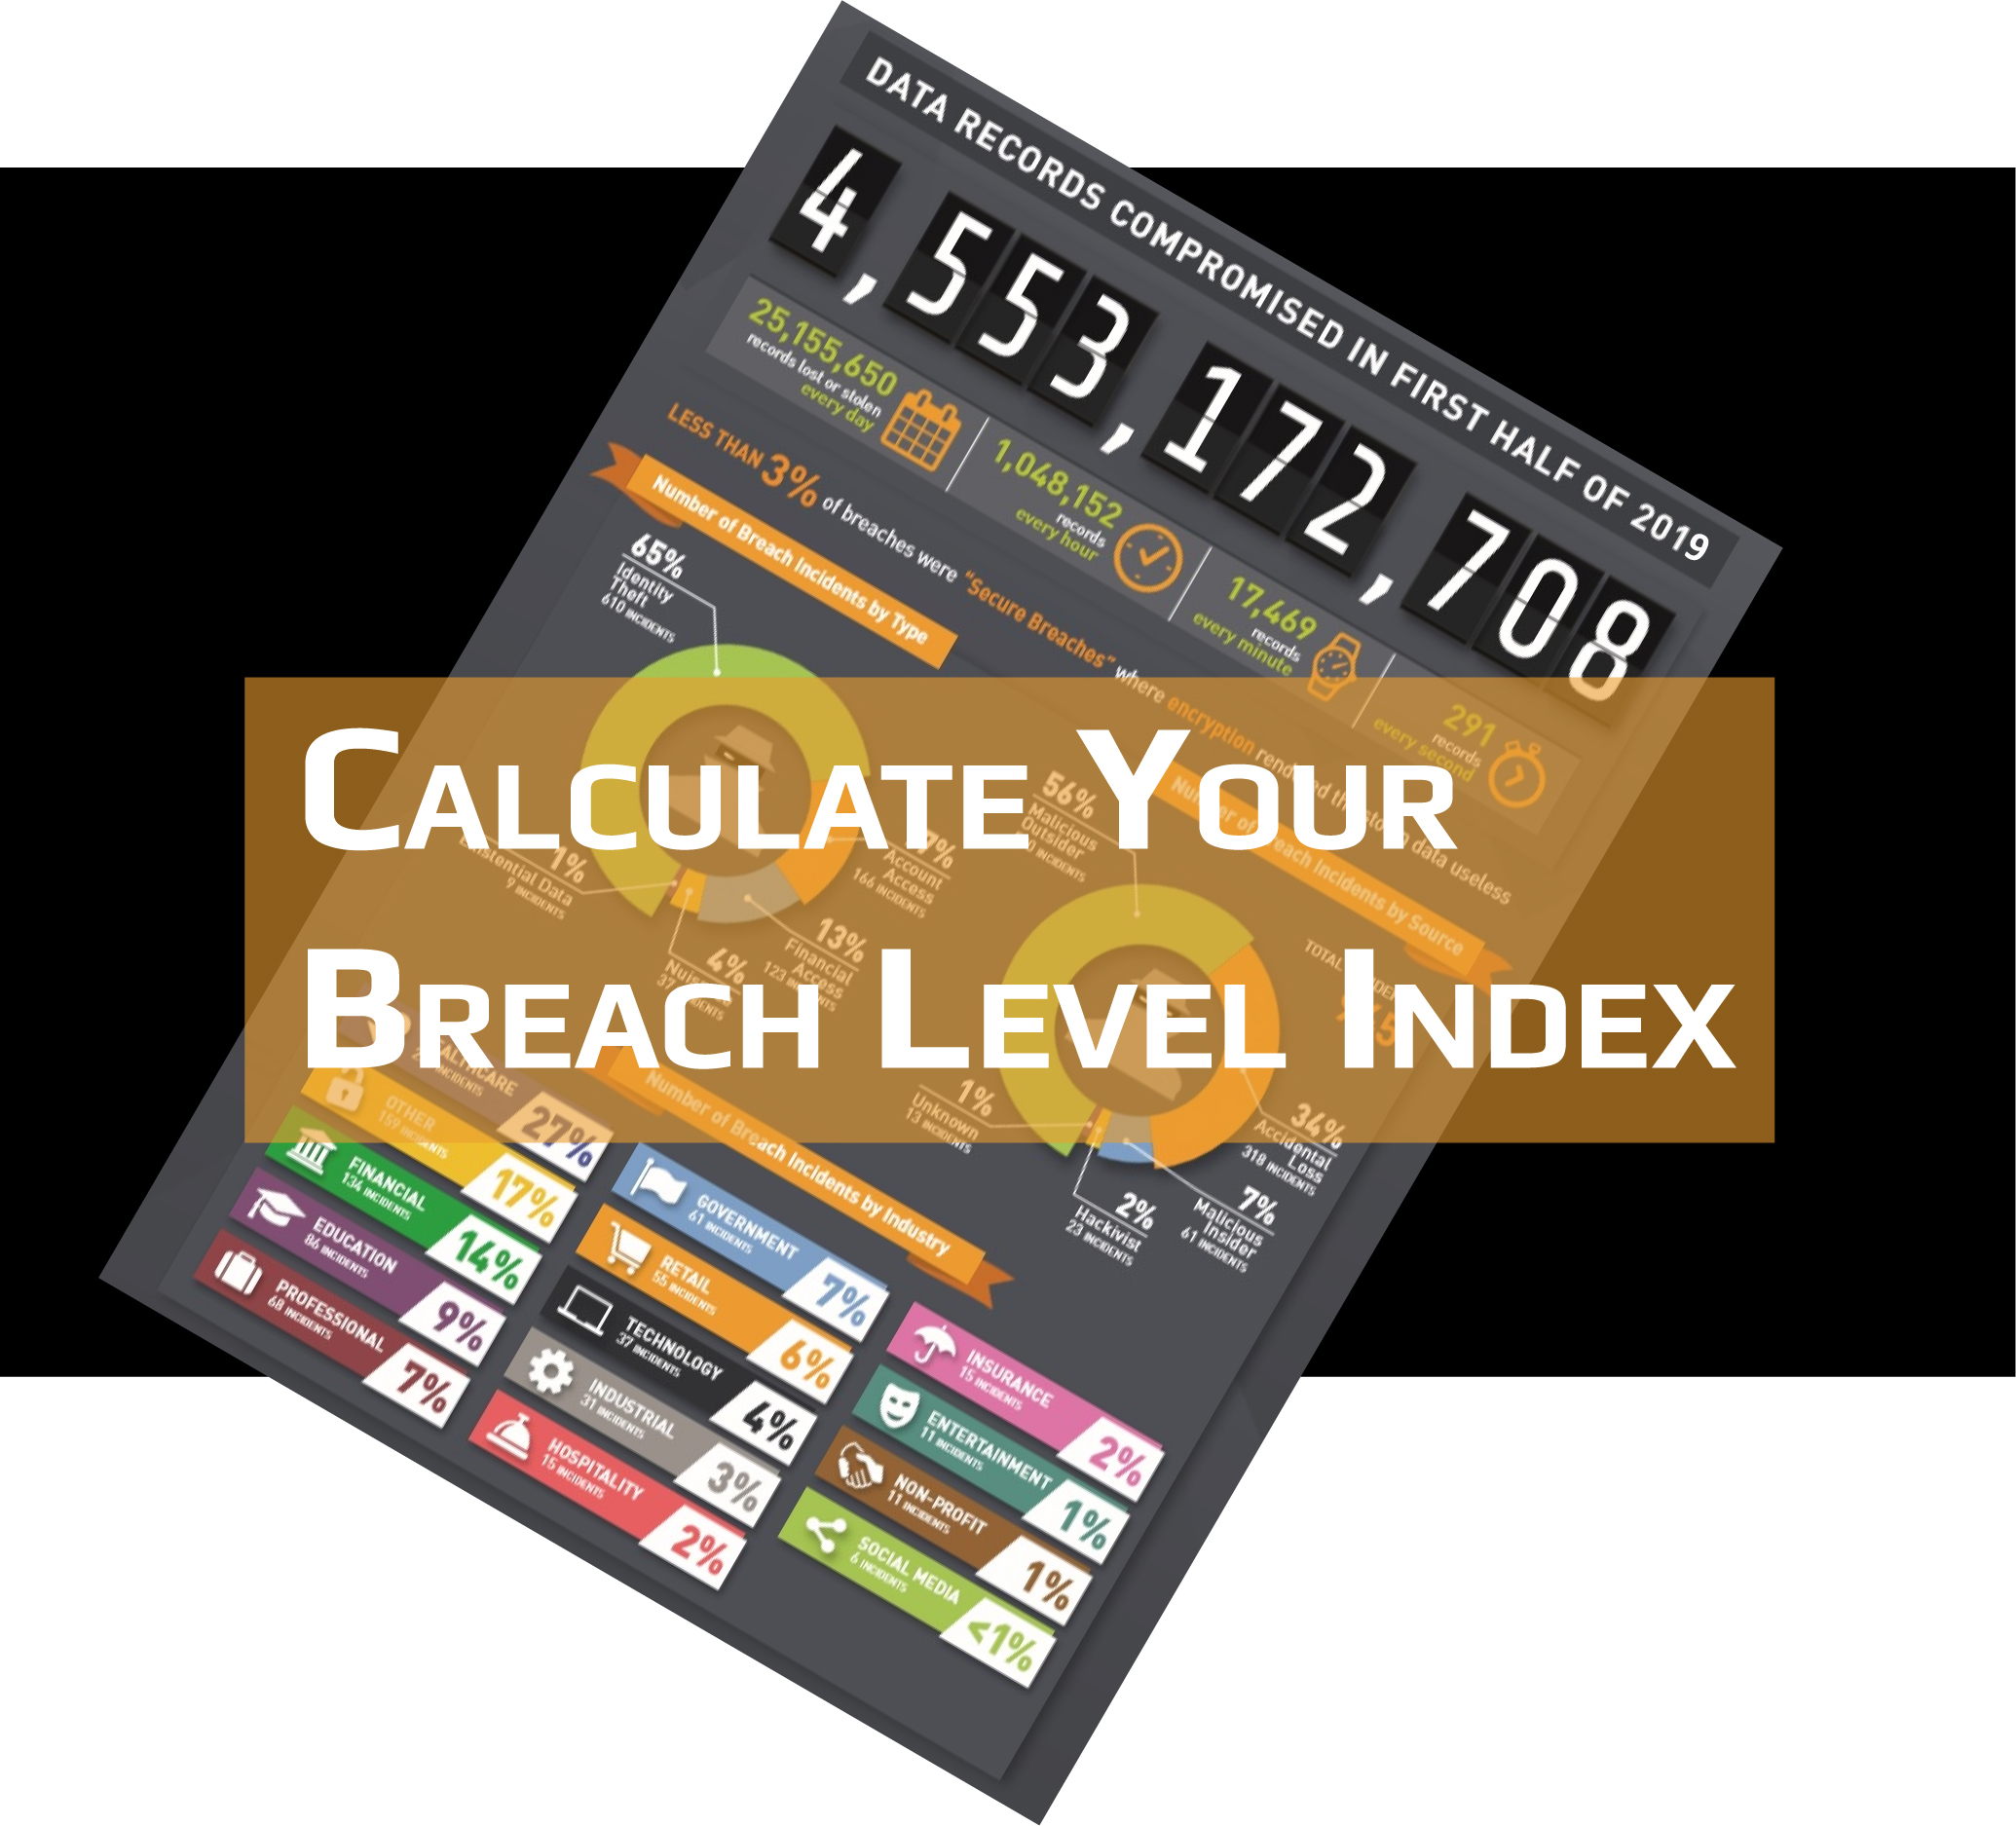 Breach Level Index